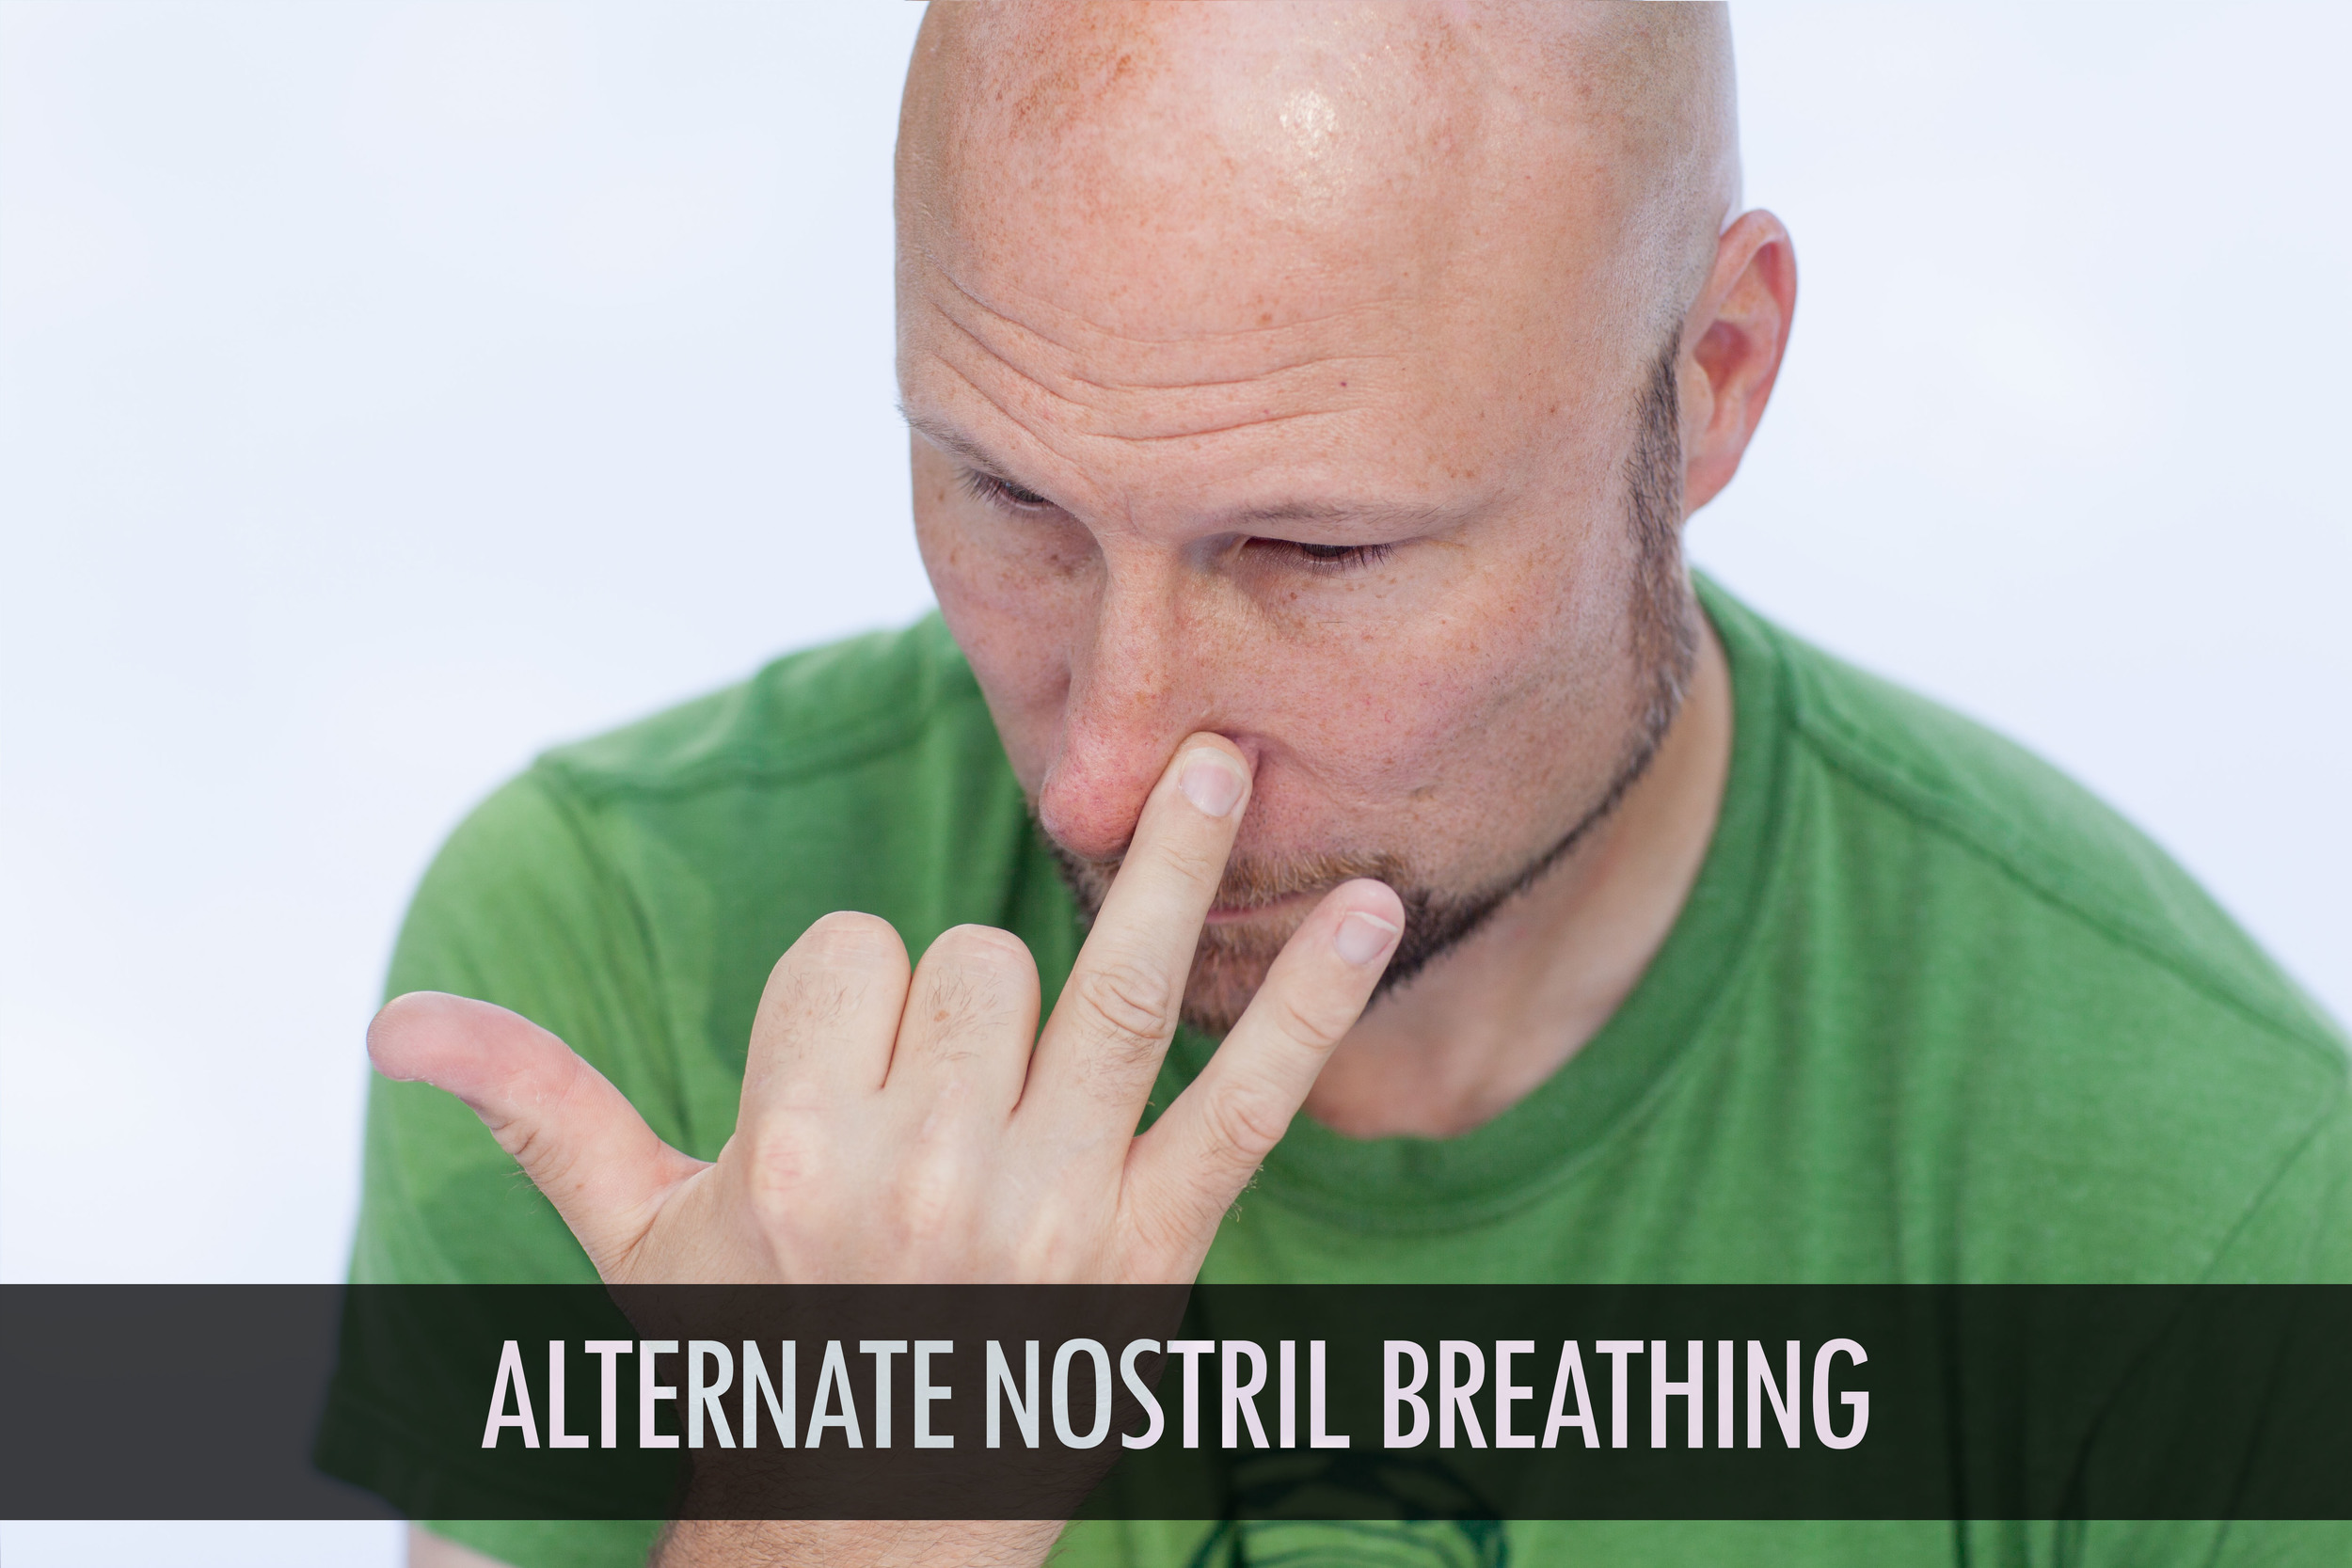 Alternate Nostril Breathing 3.jpg